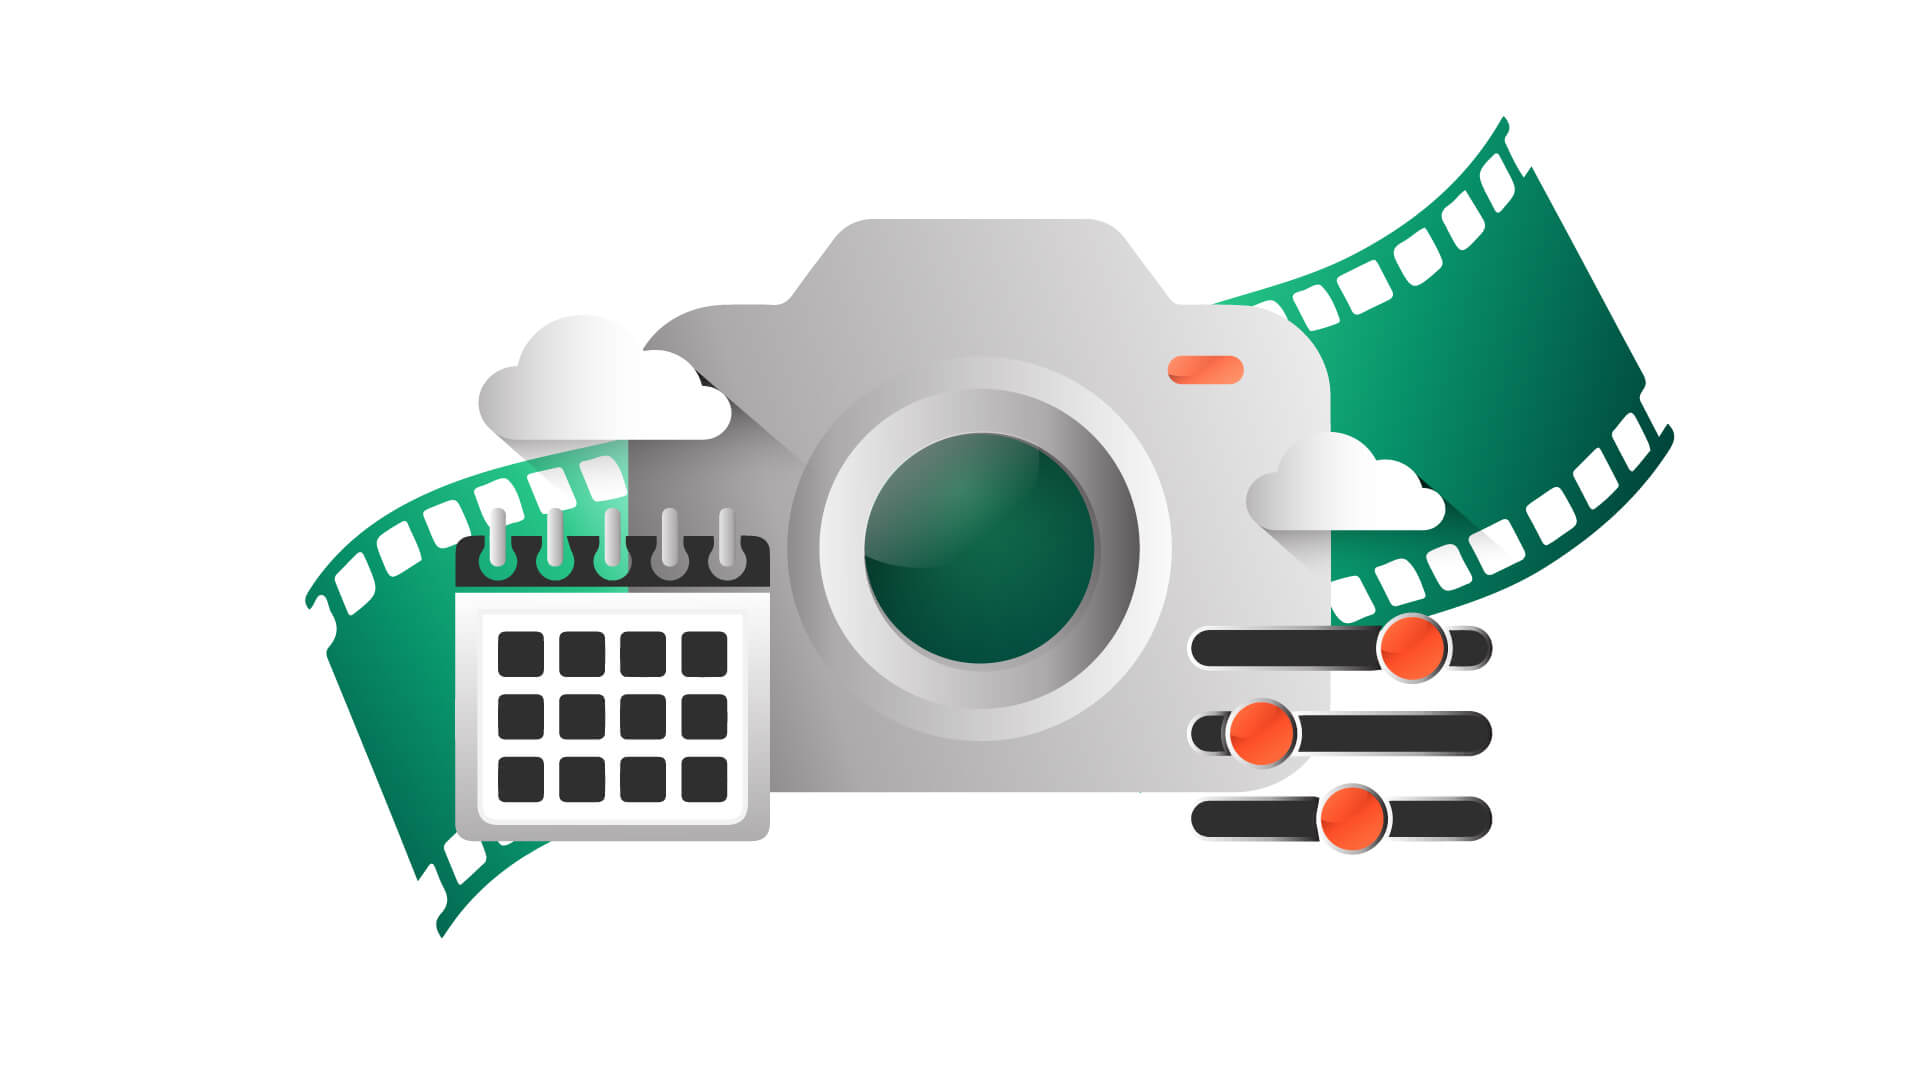 This are the best online tools for photographers that will help you business grow